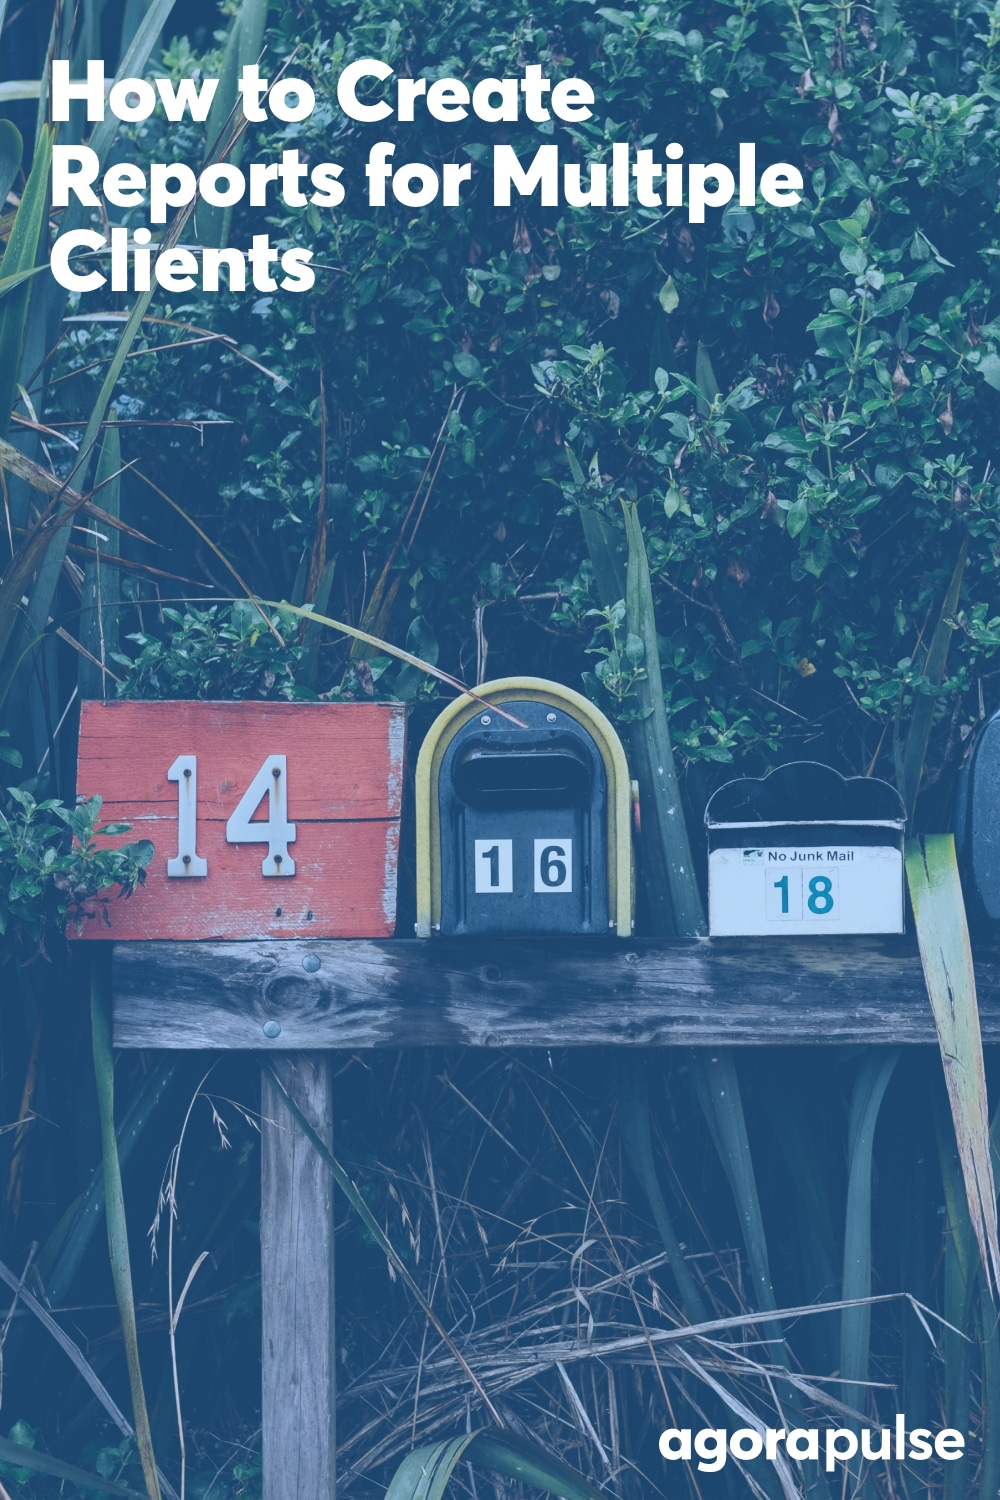 How to Easily Create Multiple Reports for Agency Clients That Impress Them